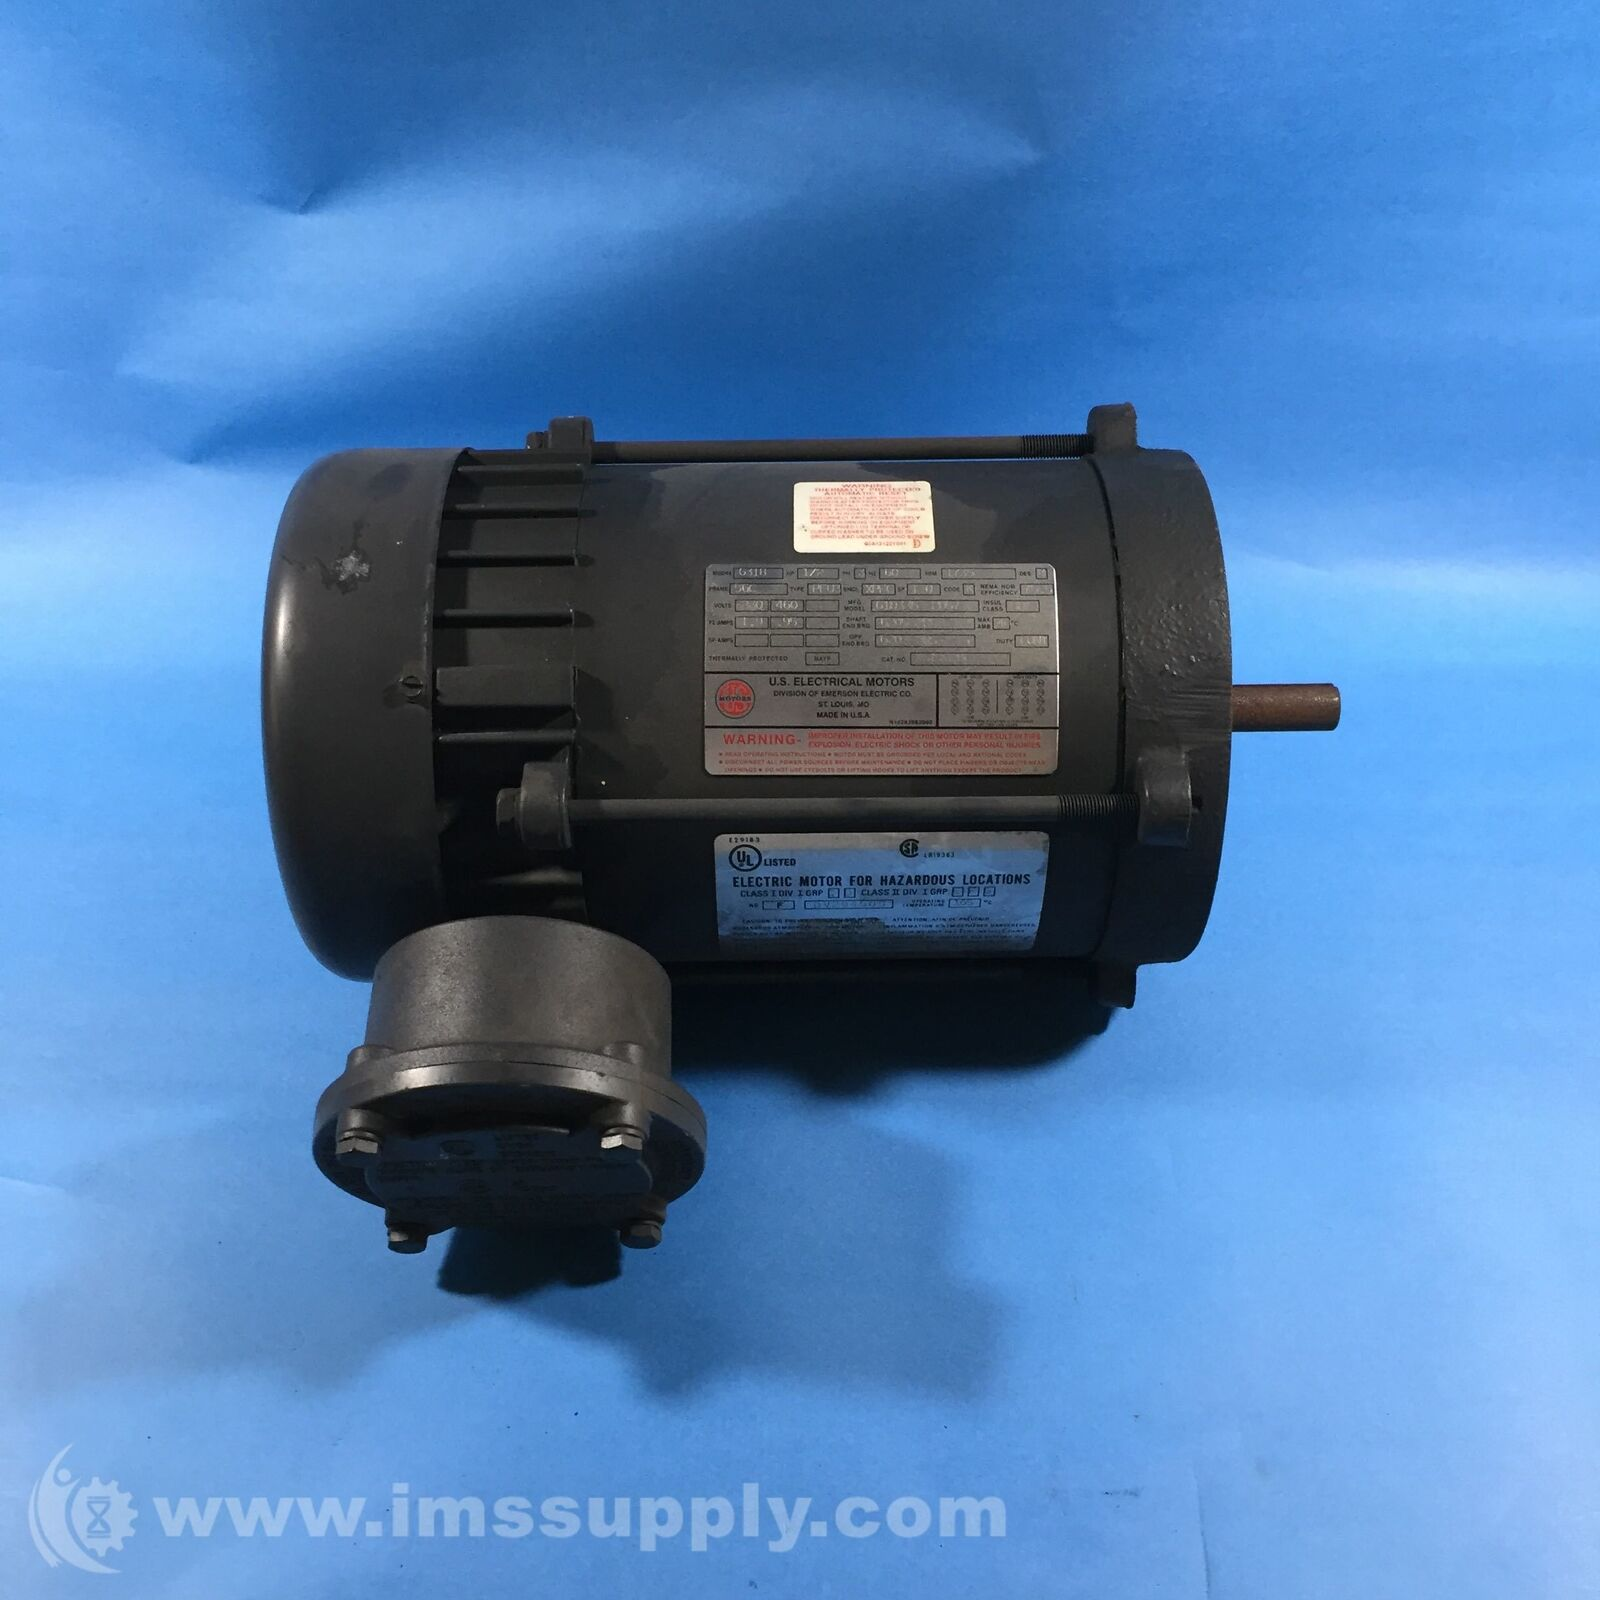 EMERSON G318 ELECTRIC MOTOR FOR HAZARDOUS LOCATIONS USIP